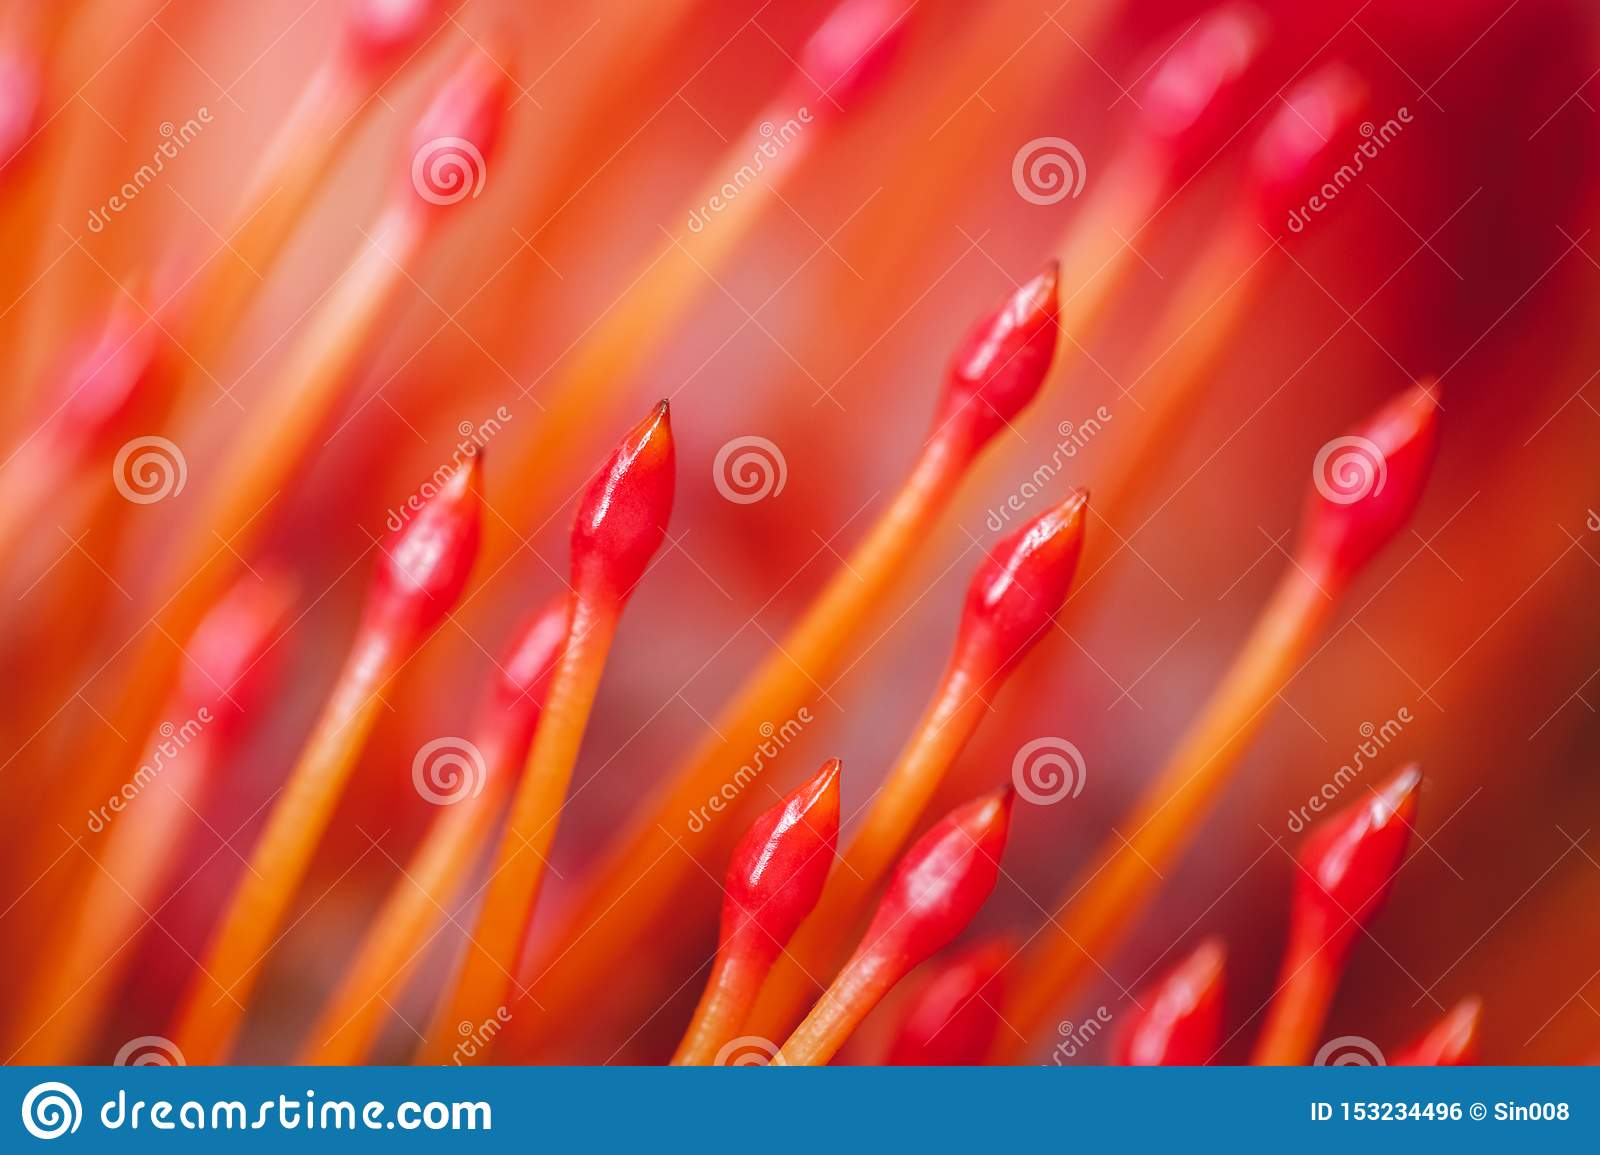 Red orange flower Pincushion Protea close-up macro. Abstract bright orange background and texture. Floral pattern